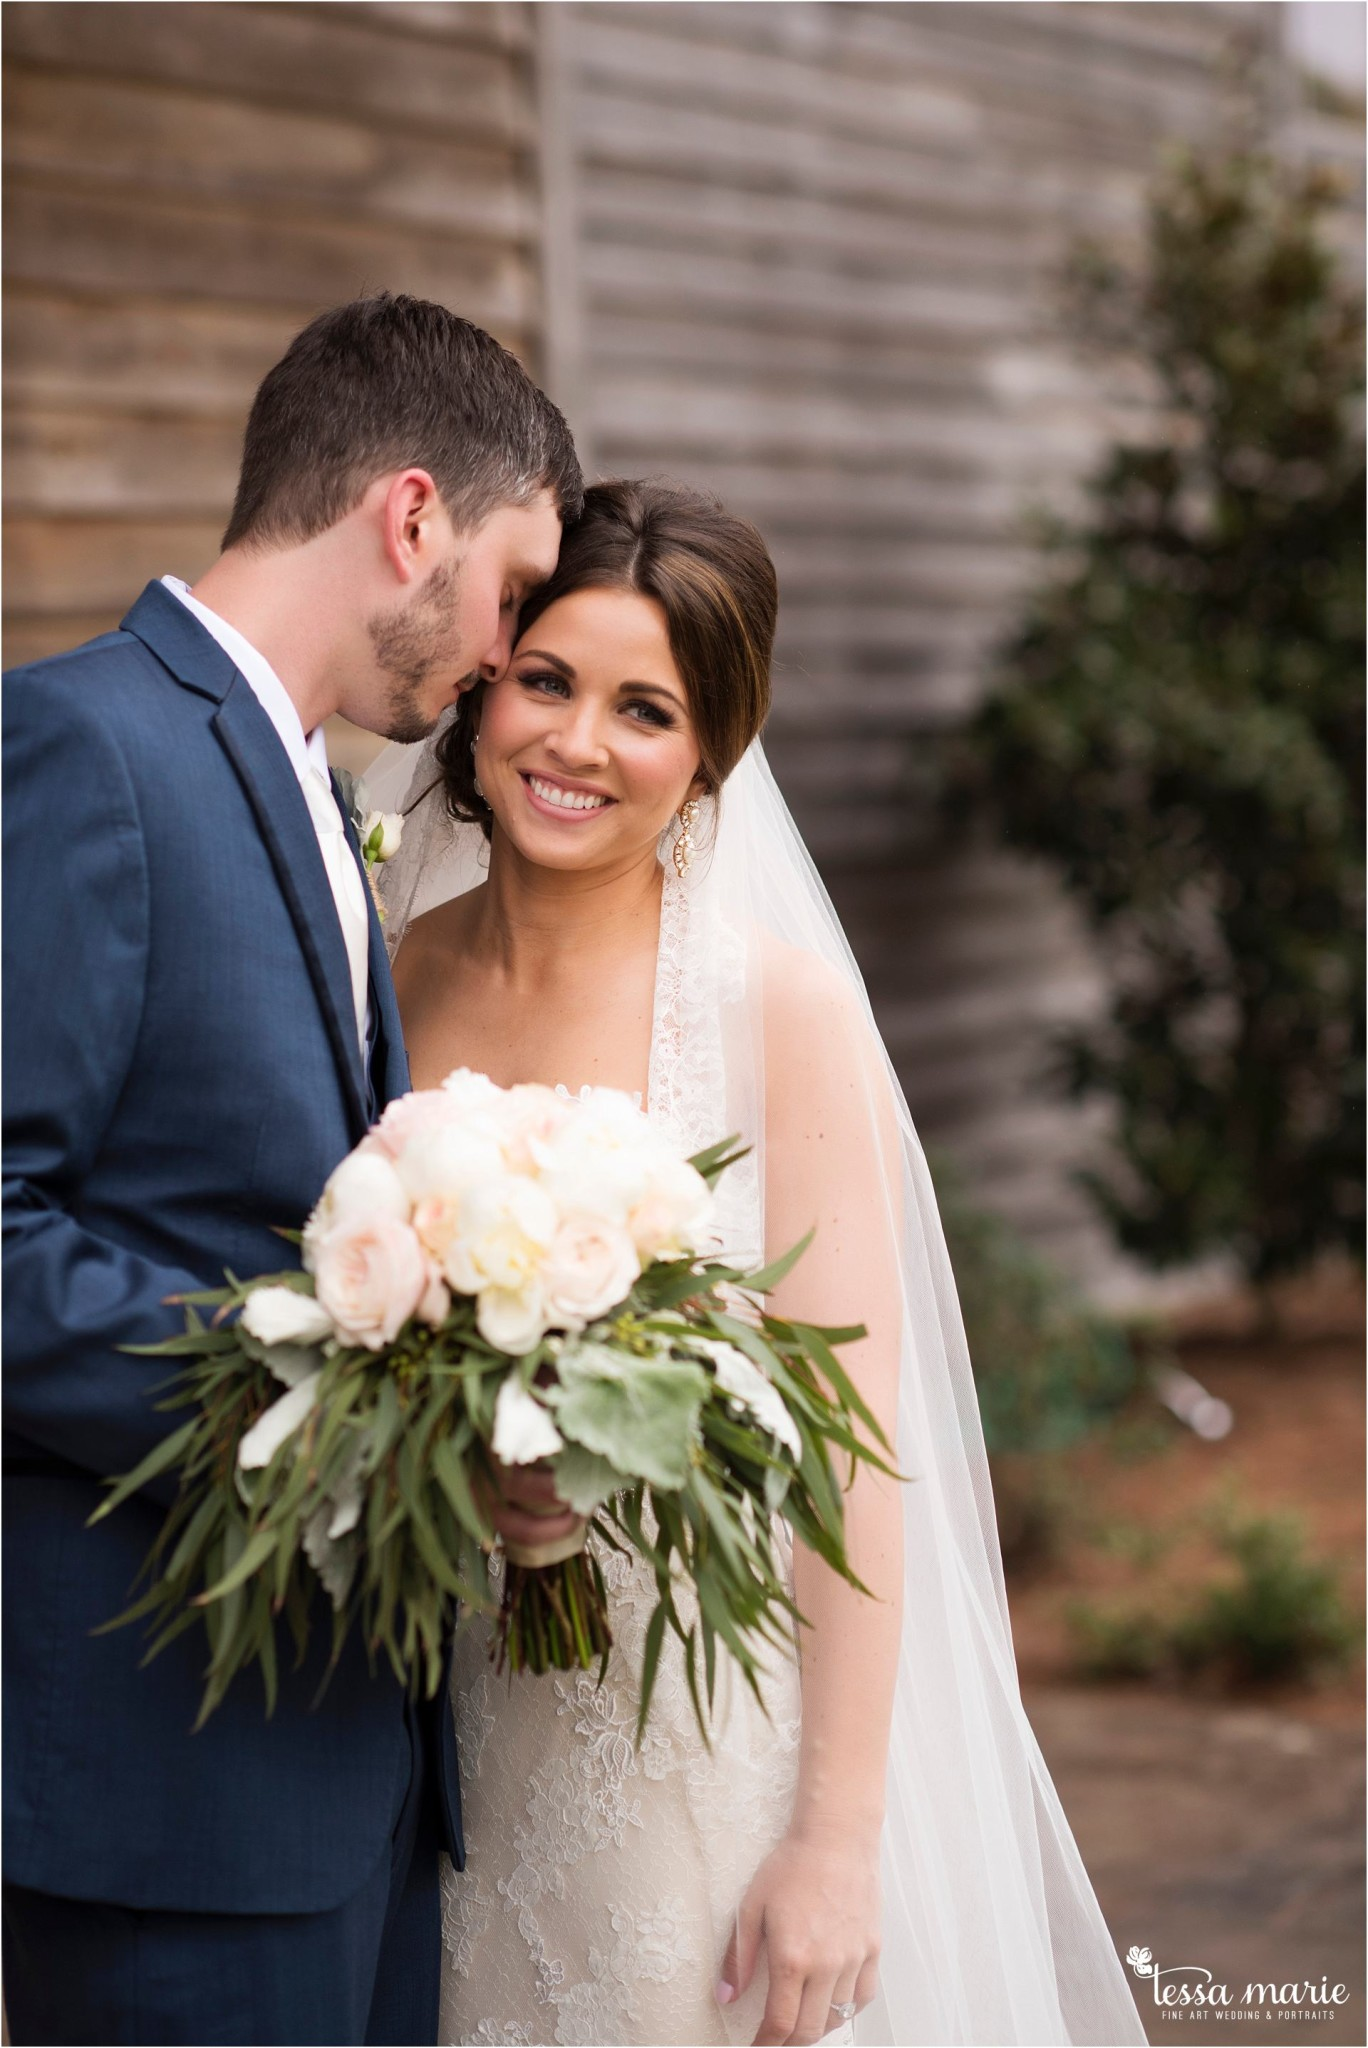 tessa_marie_weddings_legacy_story_focused_wedding_pictures_atlanta_wedding_photographer_family_pictures_portrait_Fine_art_memories_mothers_day_spring_moments_0487